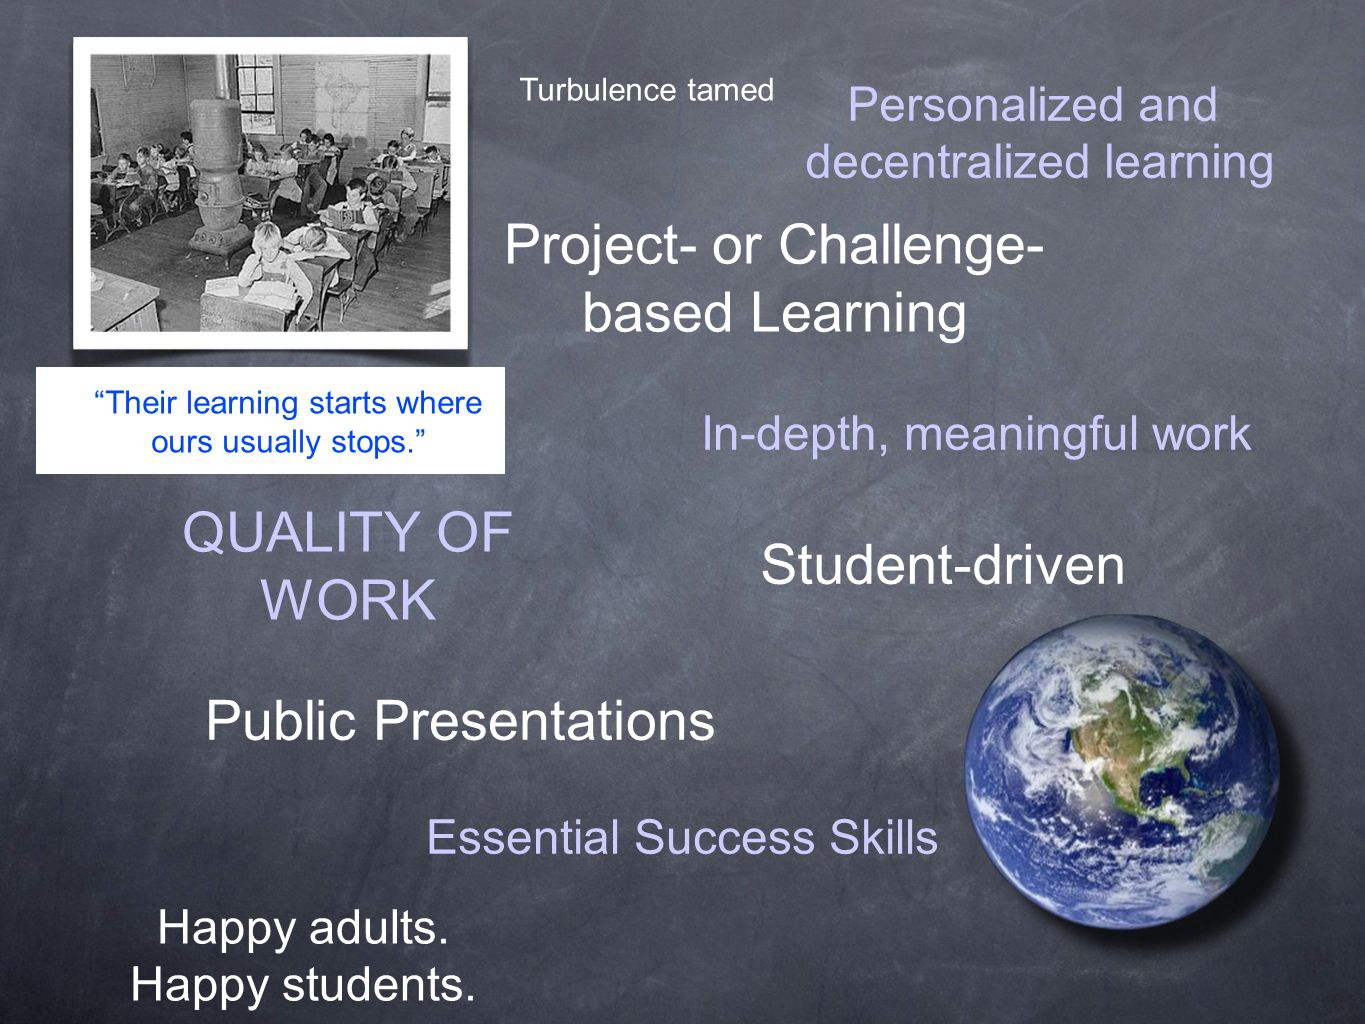 Turbulence tamed Project- or Challenge- based Learning Personalized and decentralized learning In-depth, meaningful work Student-driven QUALITY OF WORK Essential Success Skills Public Presentations Happy adults.